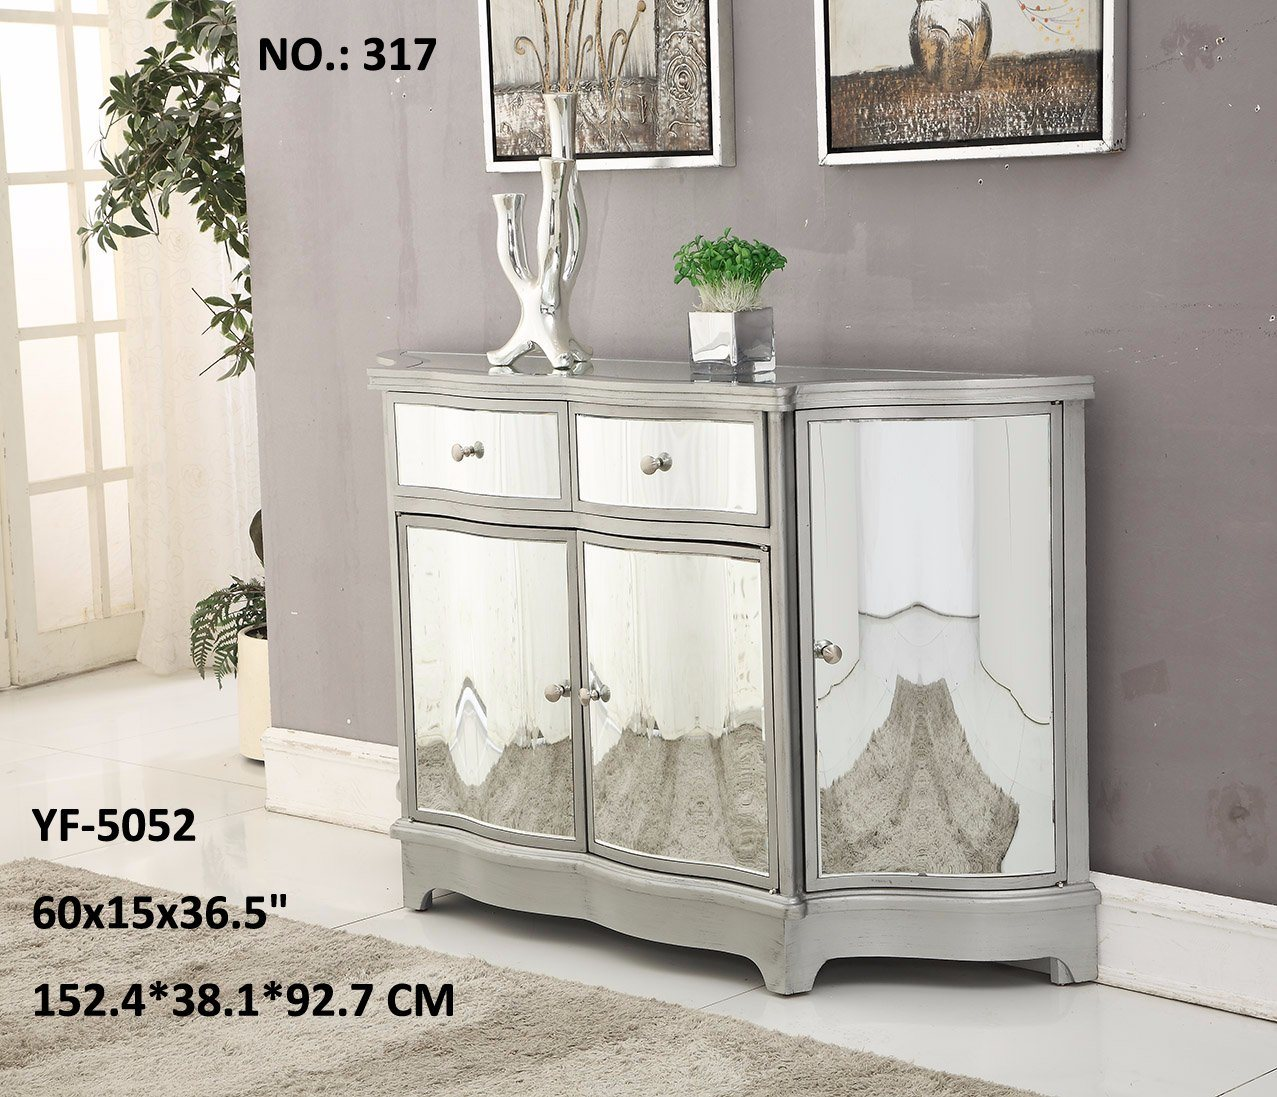 [Hot Item] Mirrored Hobby Lobby Furniture for Living Room Cabinet